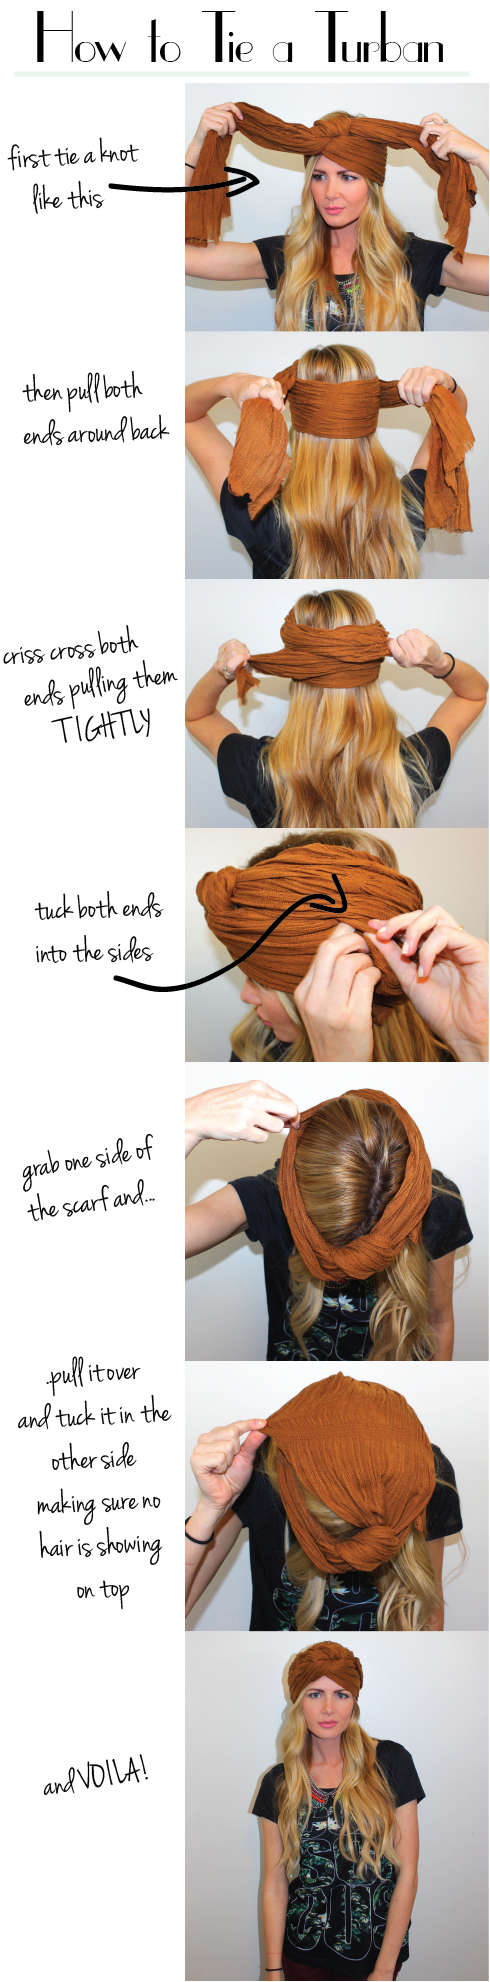 How to Tie a Turban - Barefoot Blonde by Amber Fillerup Clark